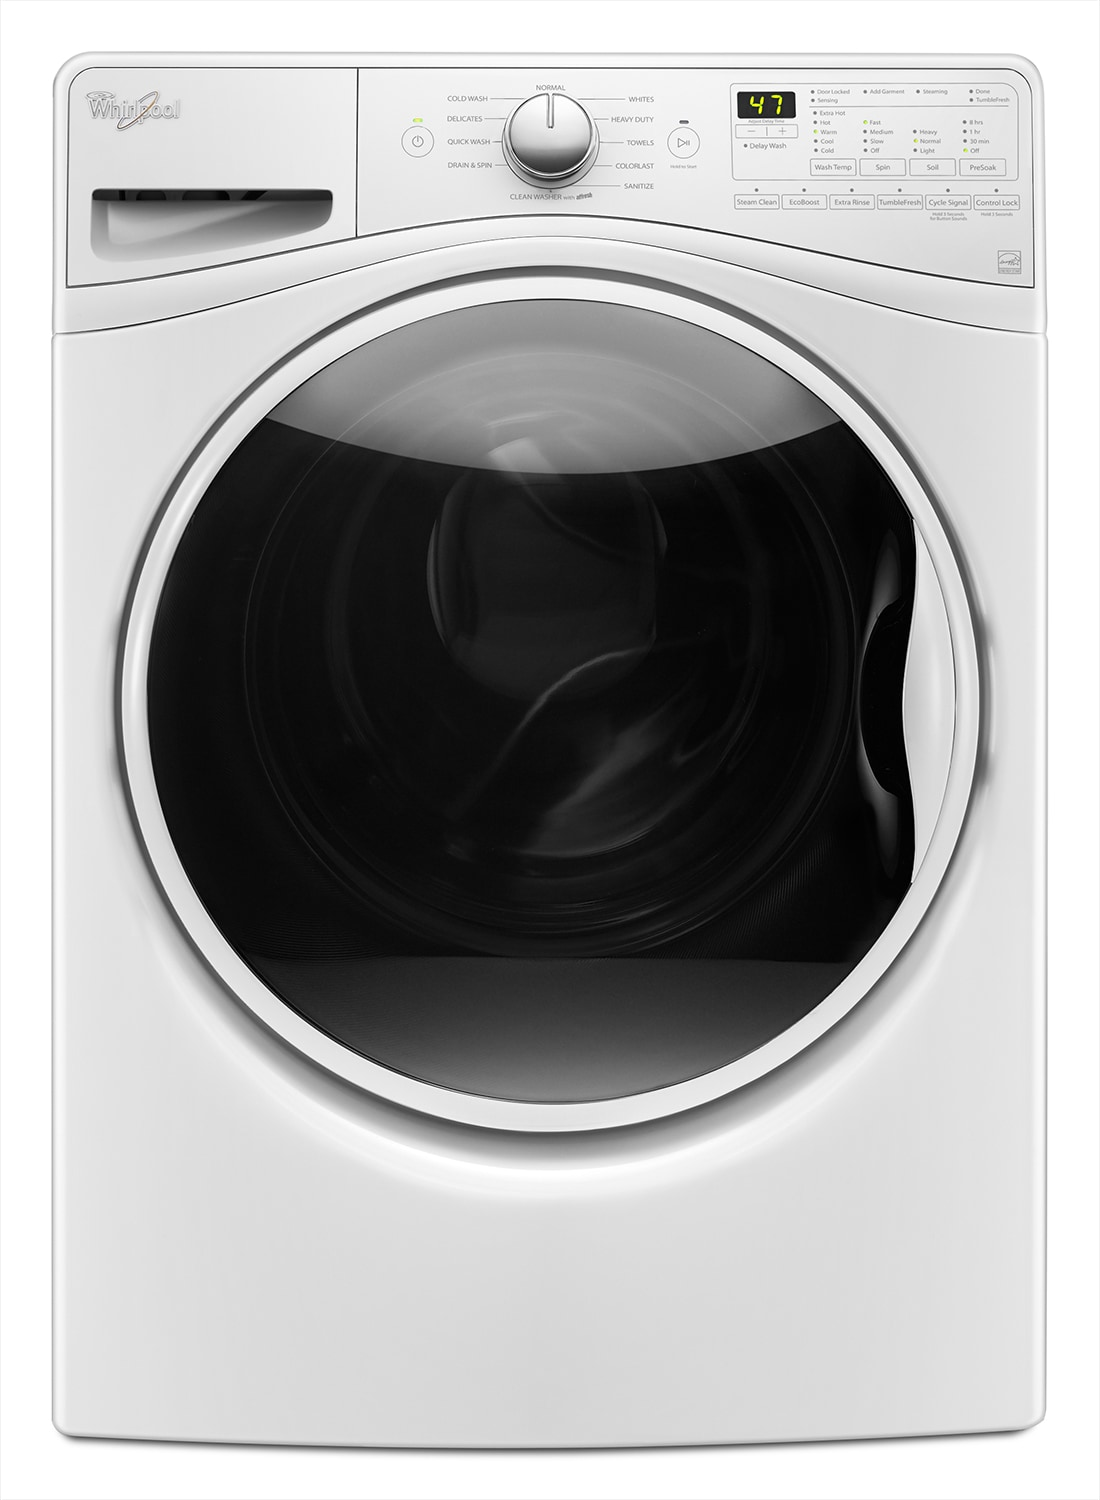 Whirlpool White Front-Load Washer (5.2 Cu. Ft. IEC) - WFW85HEFW